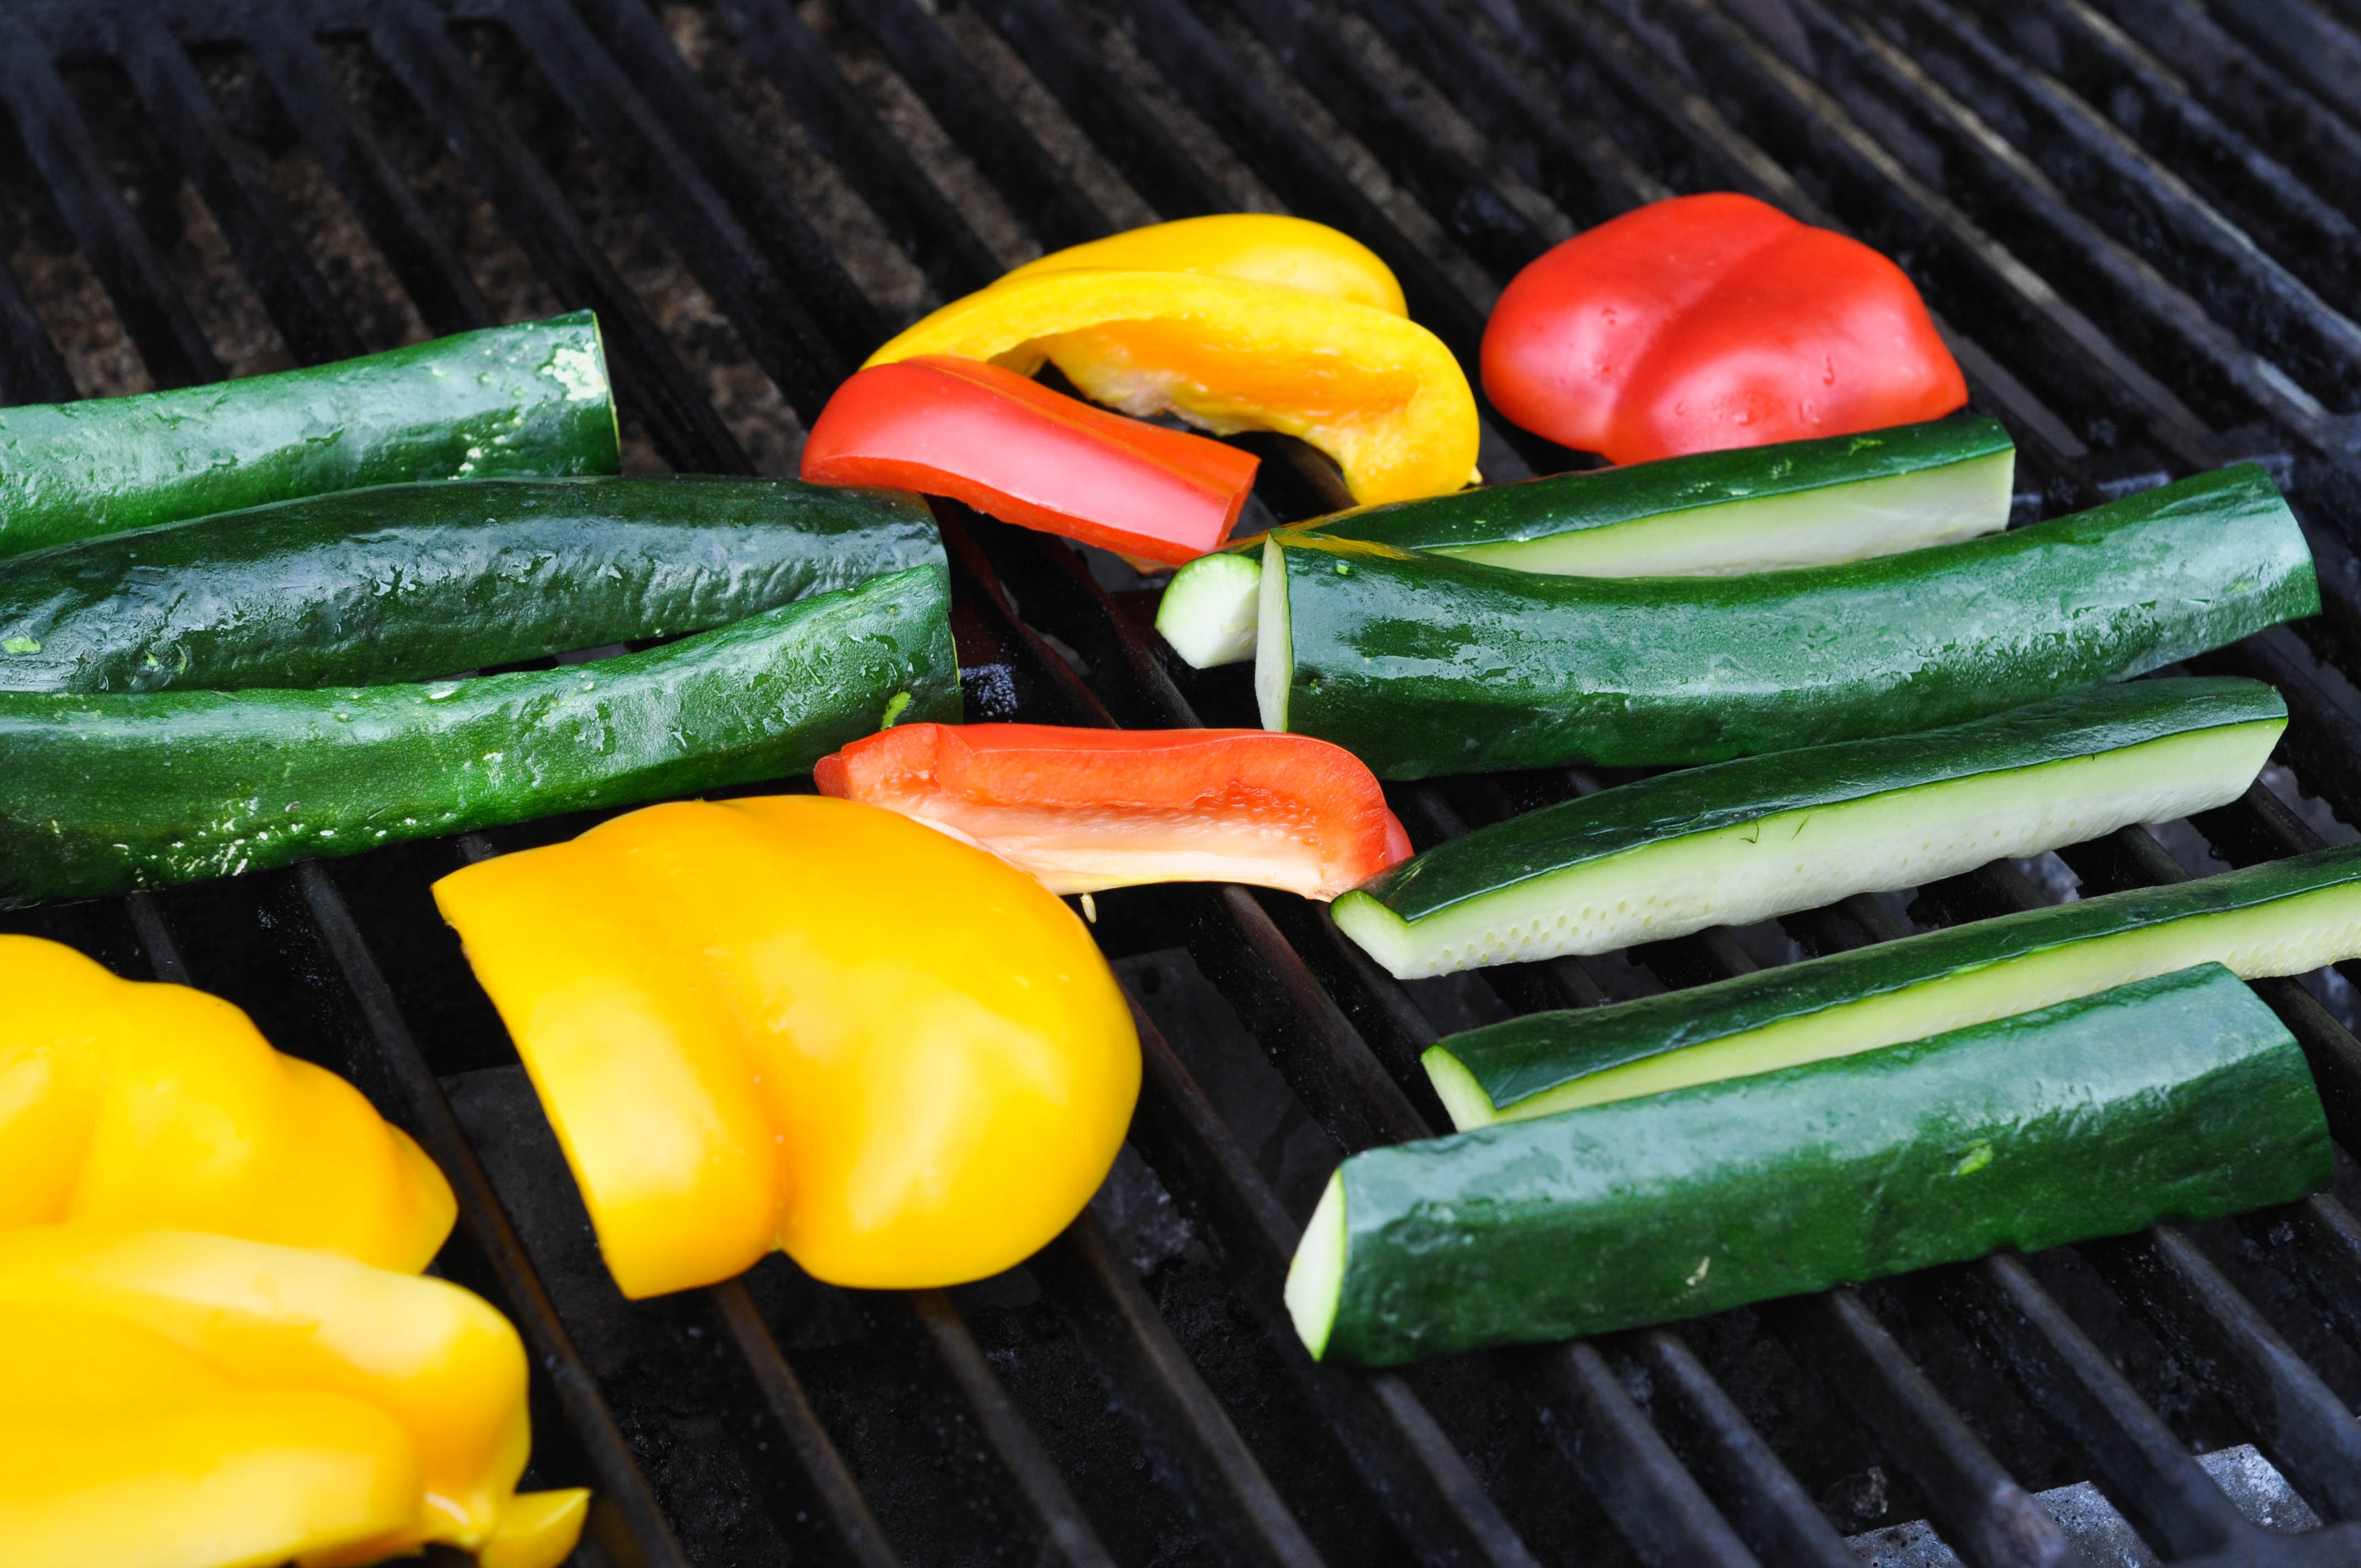 Grilled Veggies - Suburble.com (1 of 1)